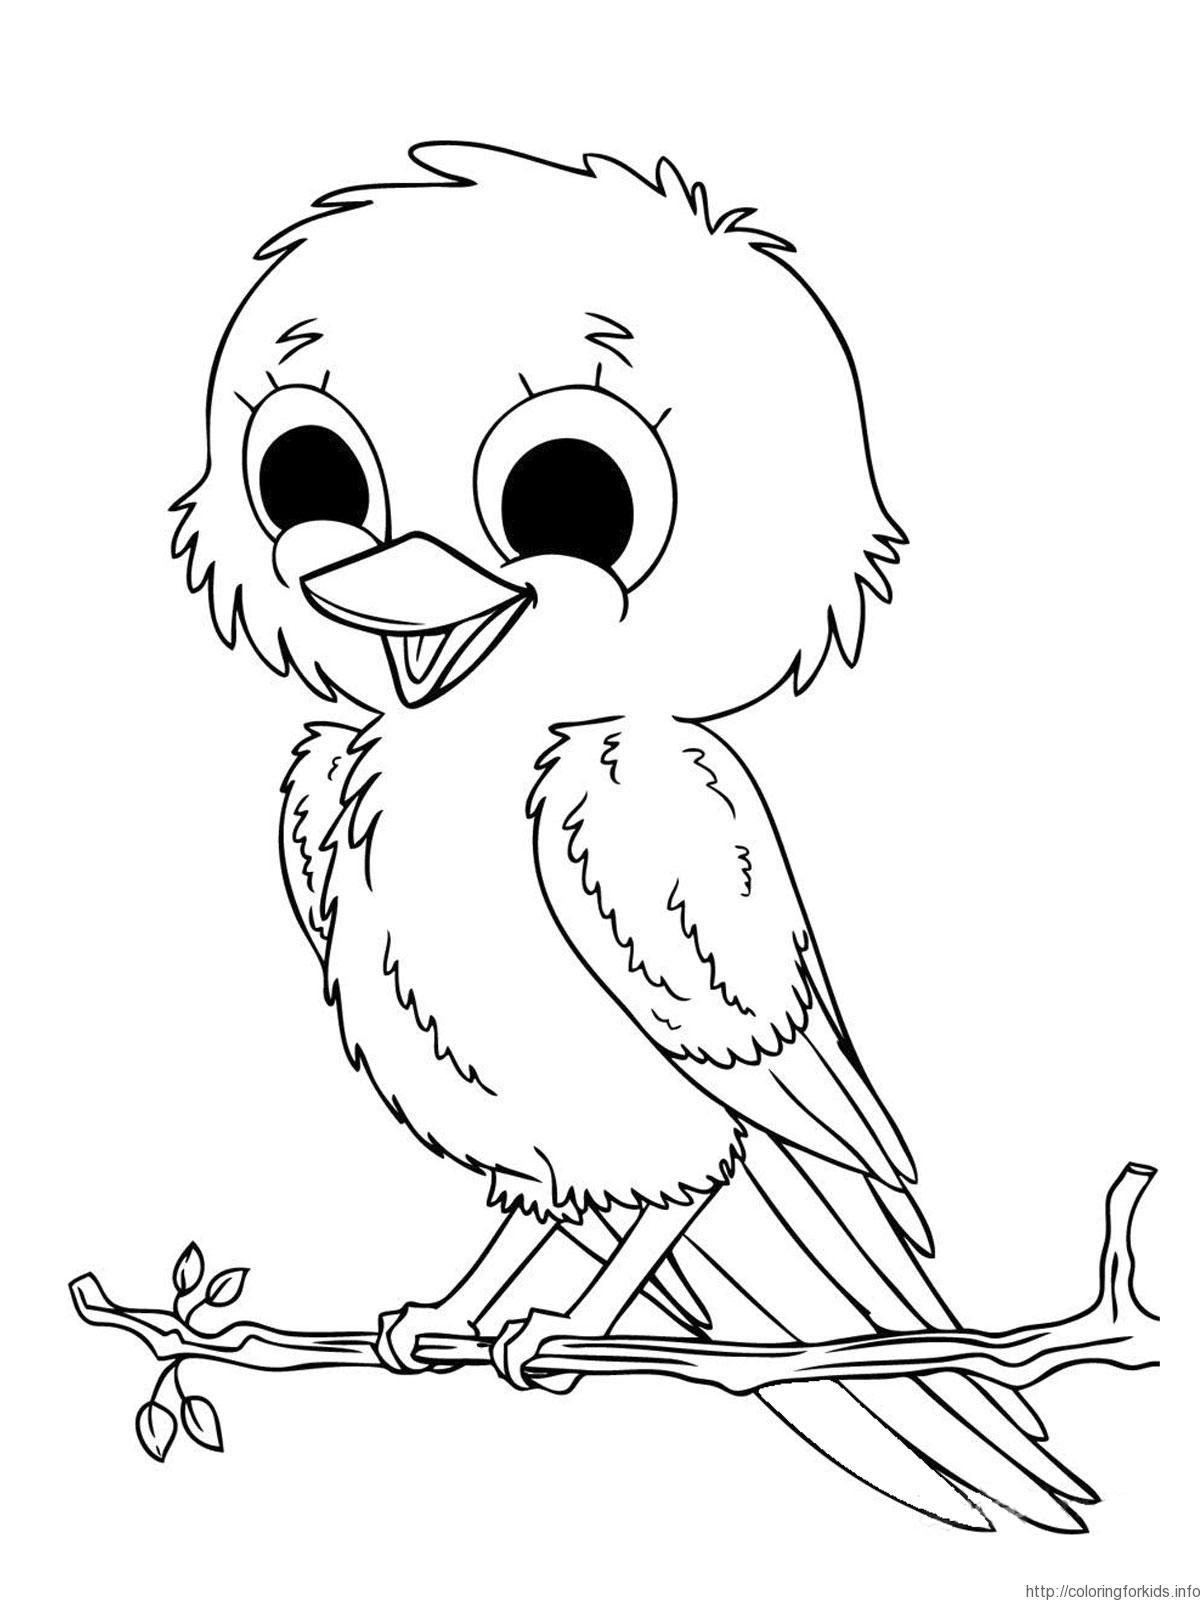 Free Coloring Pages Animals Realistic The Progressing Bird Coloring Pages Cute Coloring Pages Animal Coloring Books